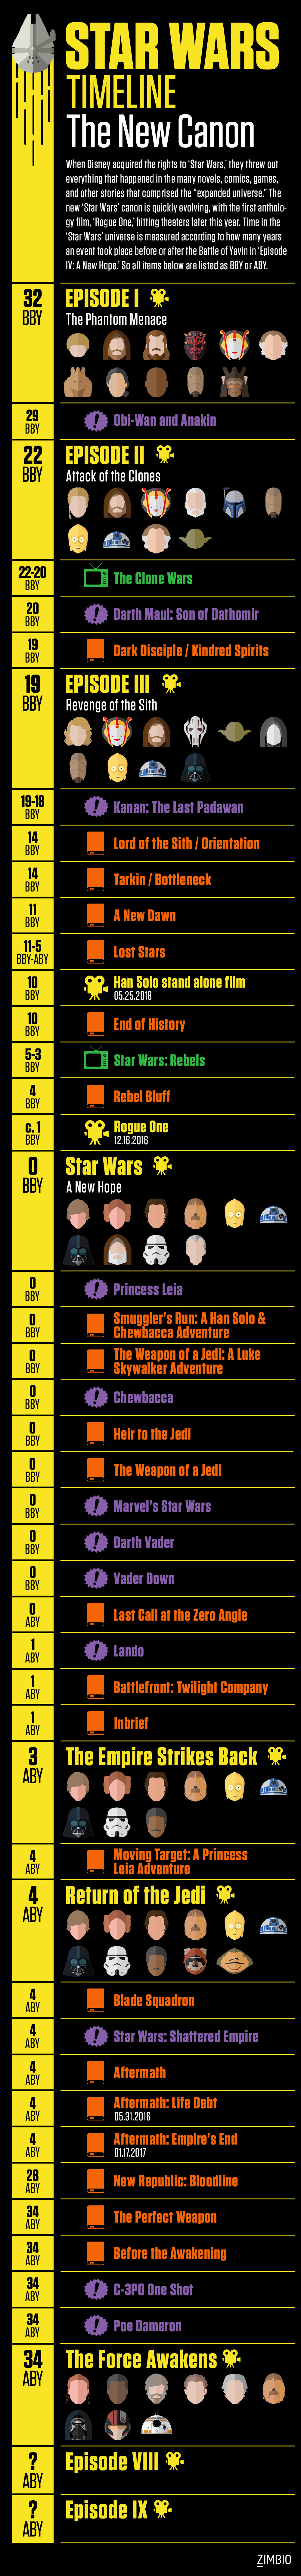 A Comprehensive Timeline of the New 'Star Wars' Canon